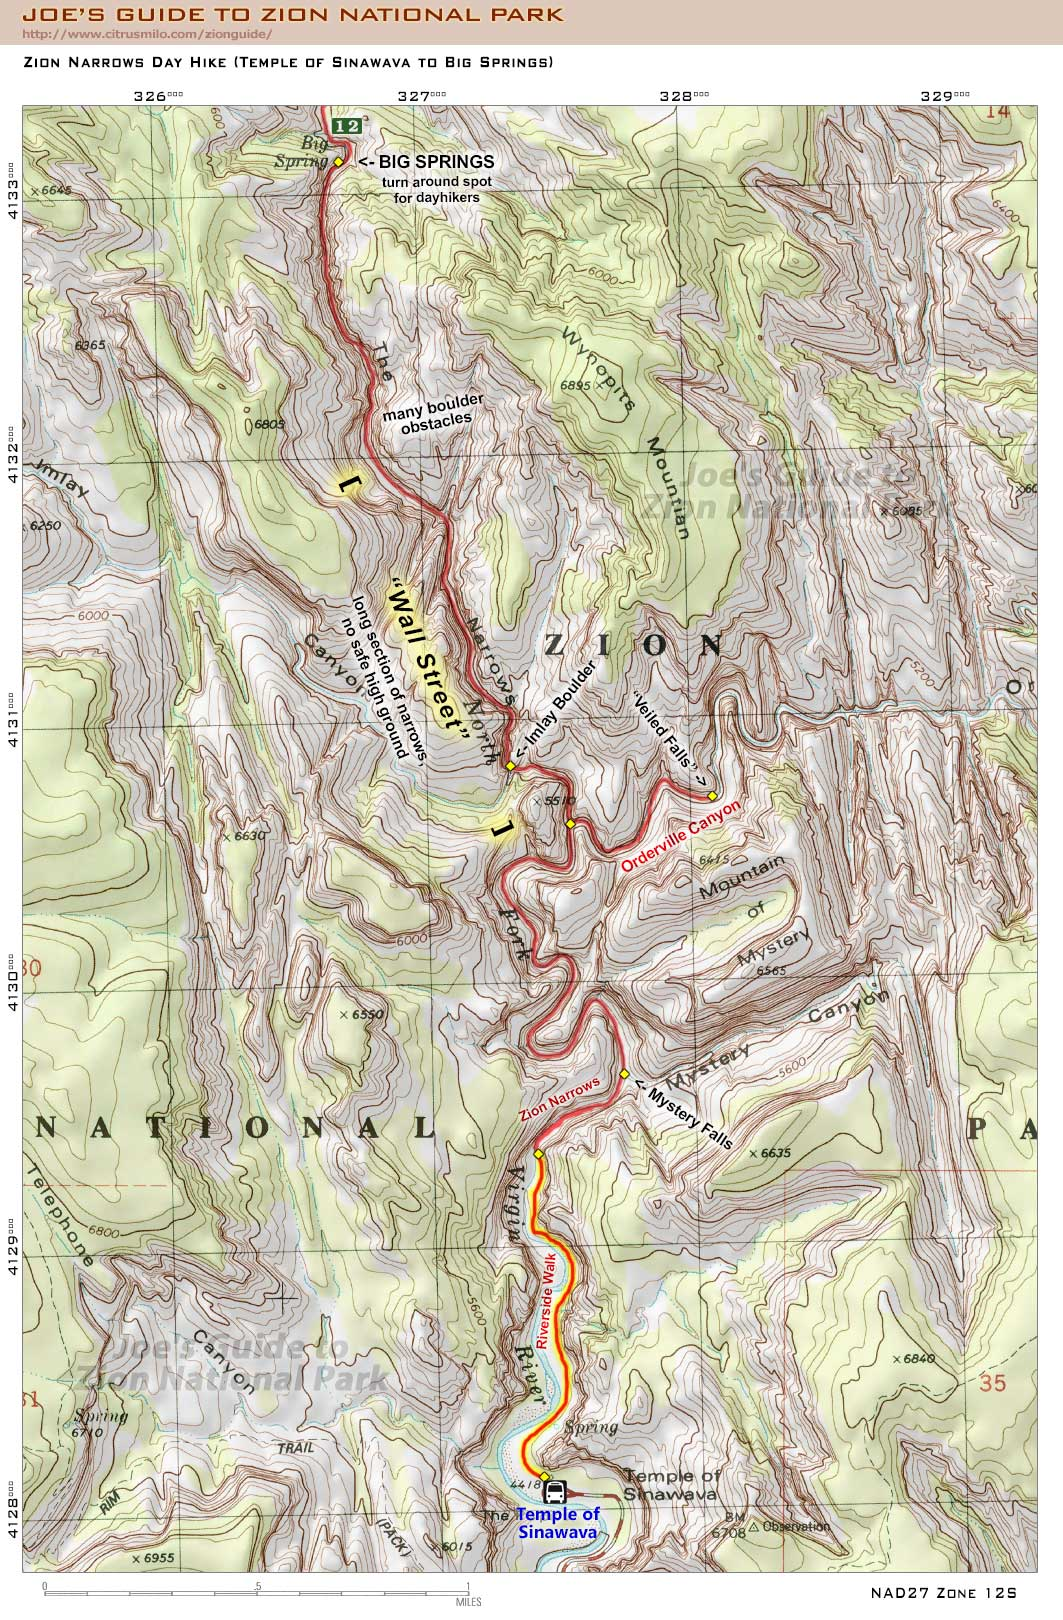 Joe's Guide to Zion National Park - Zion Narrows Day Hike Map ... on grand staircase escalante national monument map, naval station great lakes map, the narrows map, woodstock map, gilgal map, ravinia map, grand canyon trail map, arches national park map, fairfield map, evanston map, dekalb map, ancient israel map, bryce canyon map, gates of the arctic map, denali map, black canyon of the gunnison map, coral pink sand dunes map, westmont map, deerfield map, armageddon map,